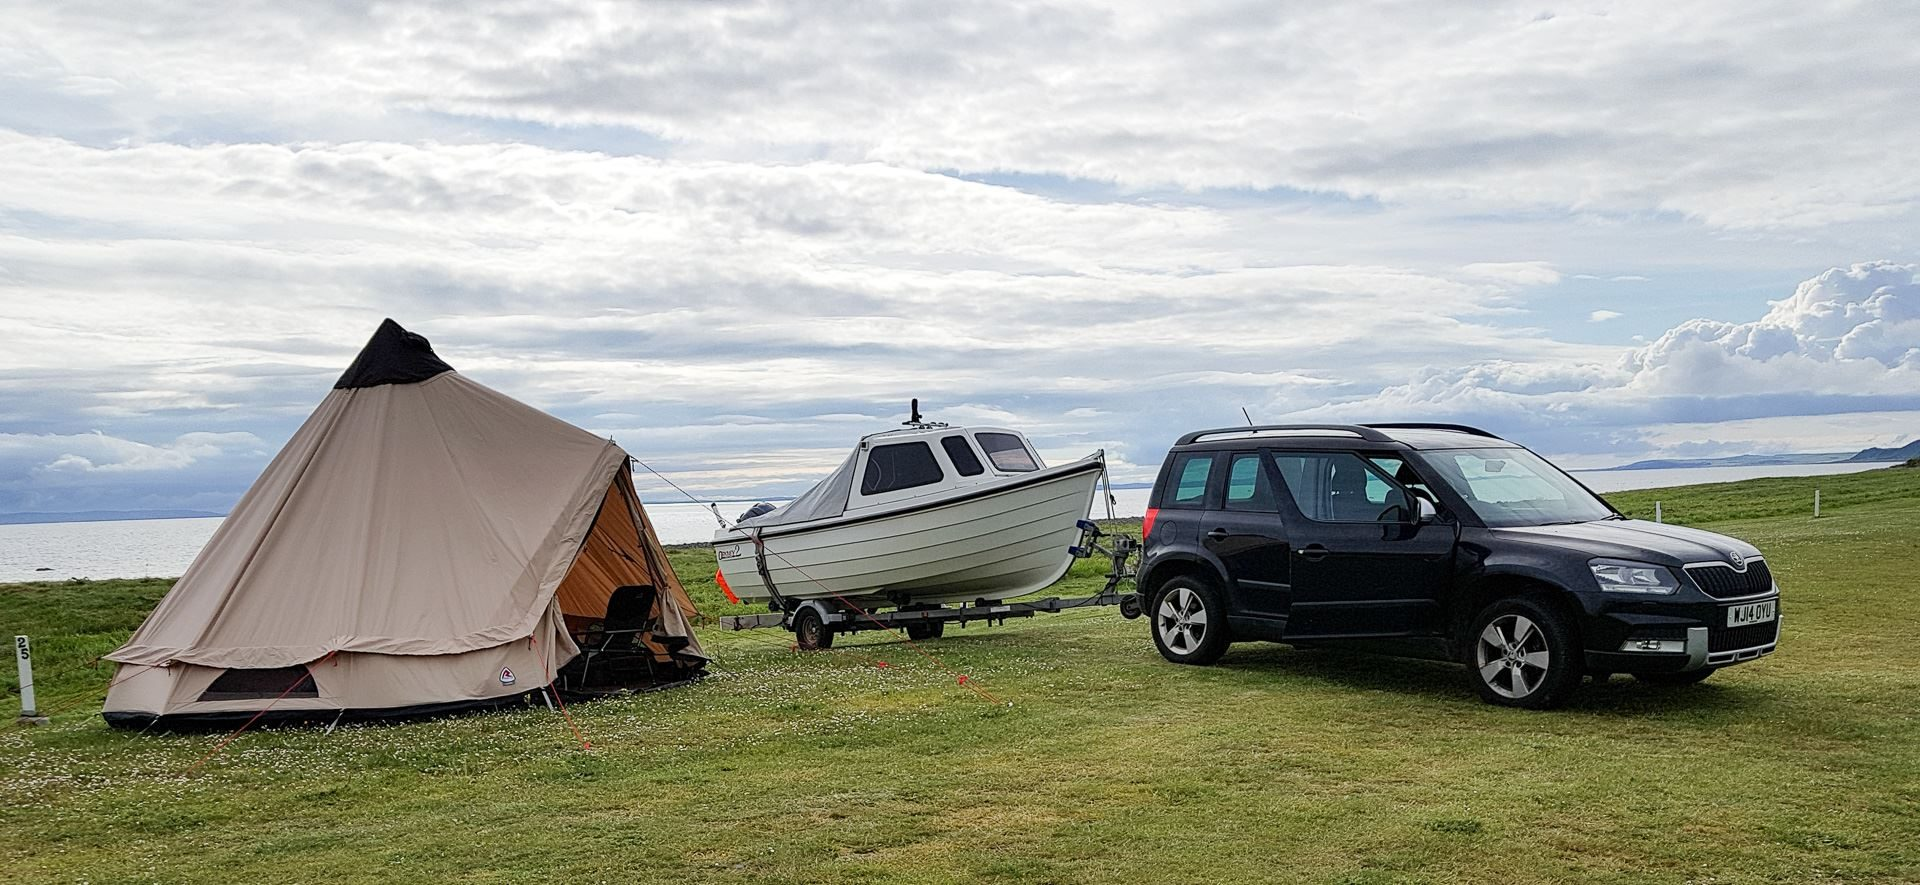 Boat, car and tent setup for the week on the shores of Luce Bay